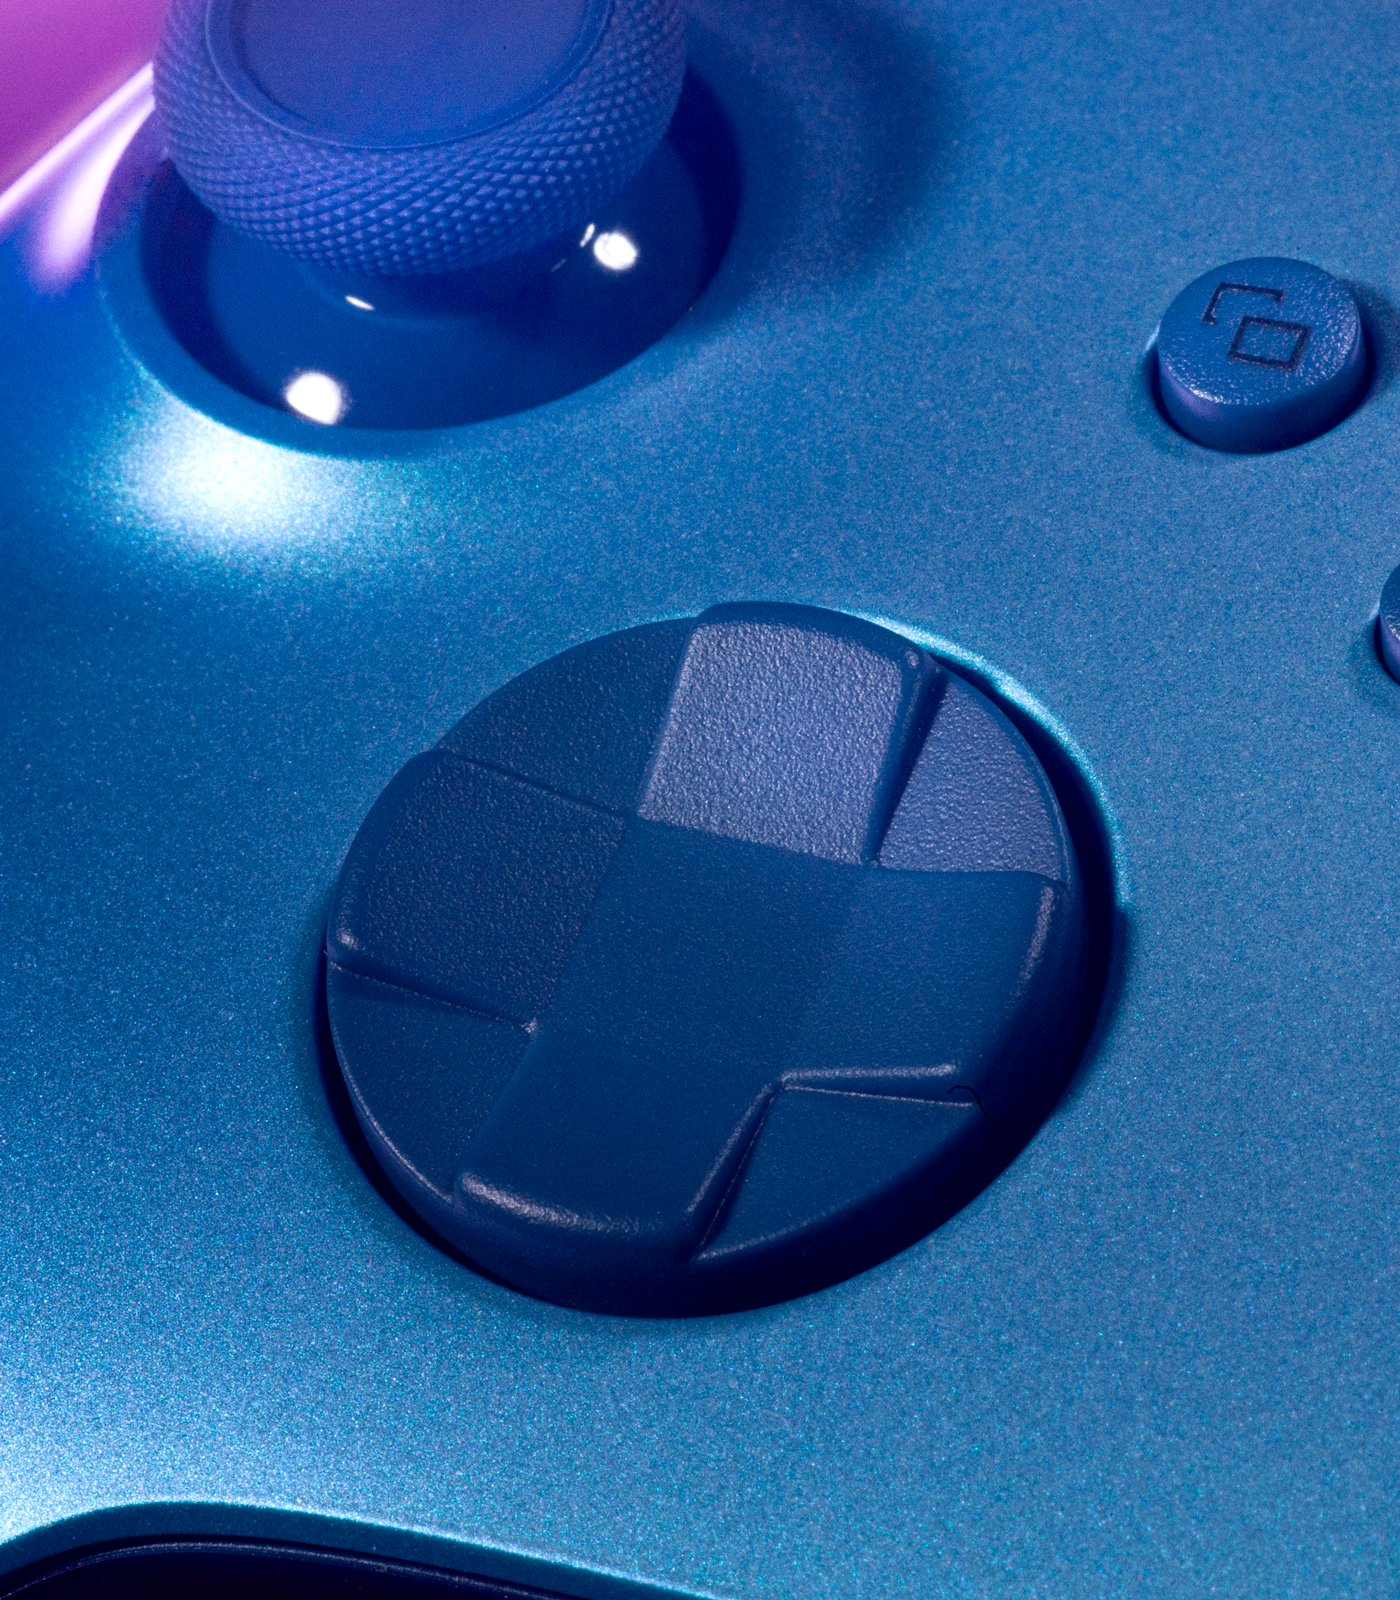 A close up of the blue Dpad of the Aqua Shift wireless controller.